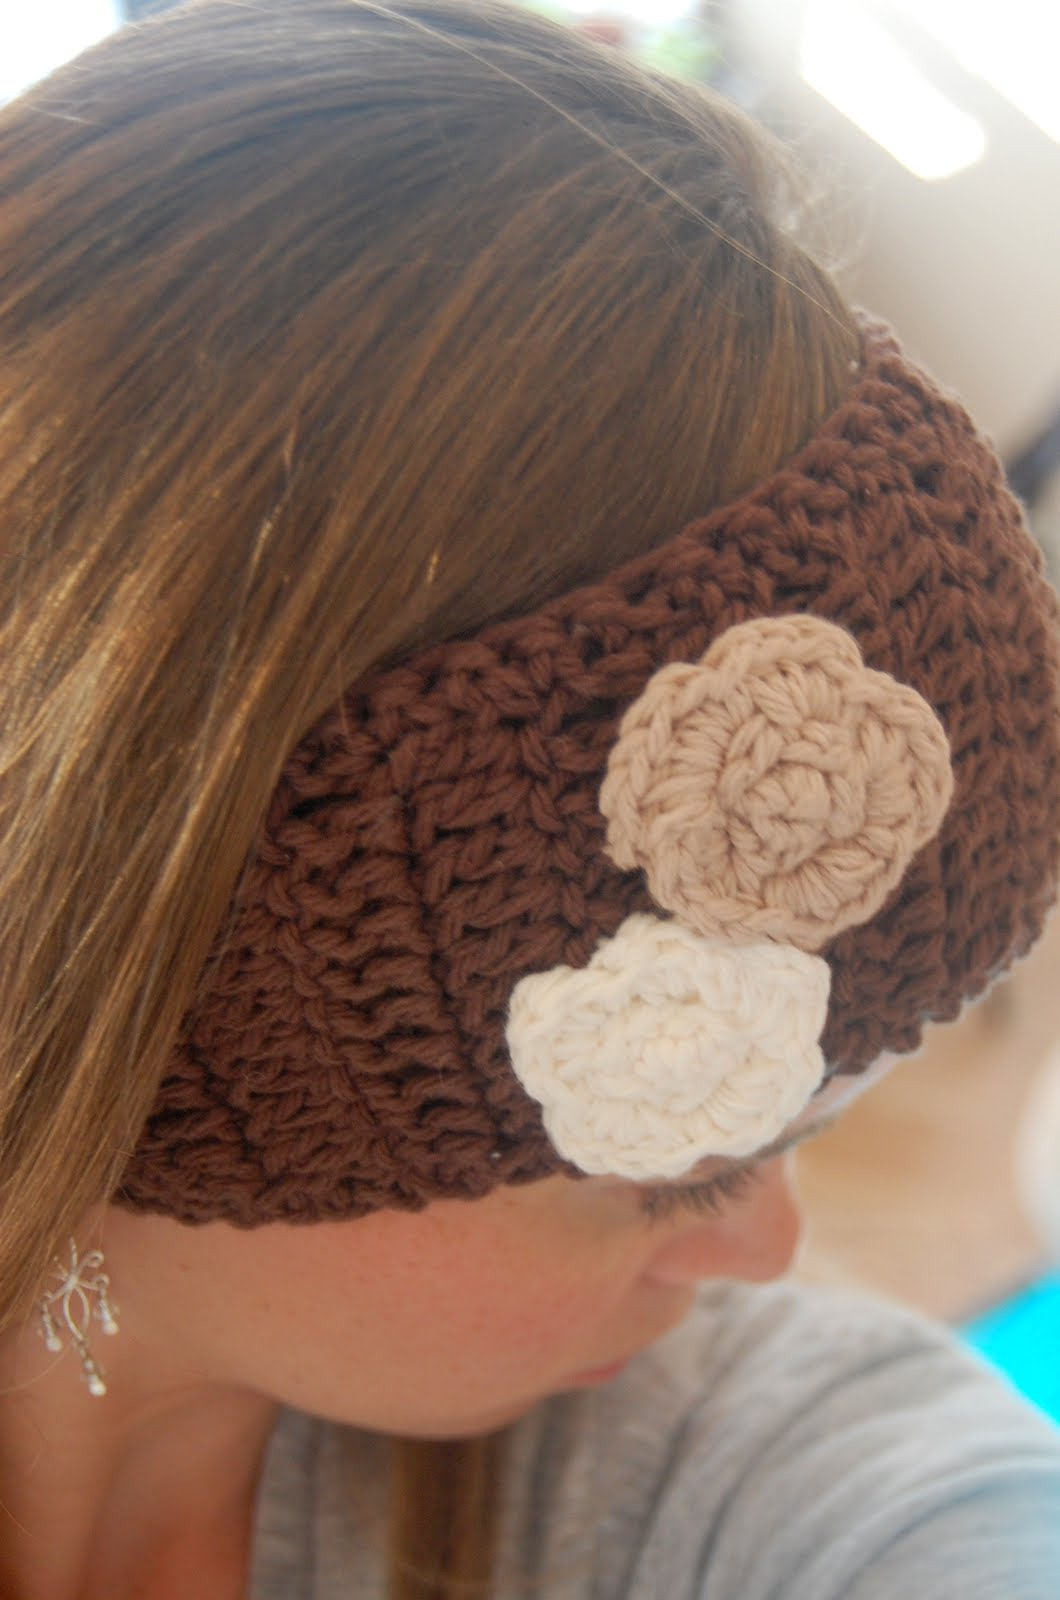 Homemade saturdays tutorial crocheted ear warmer tutorial crocheted ear warmer bankloansurffo Choice Image